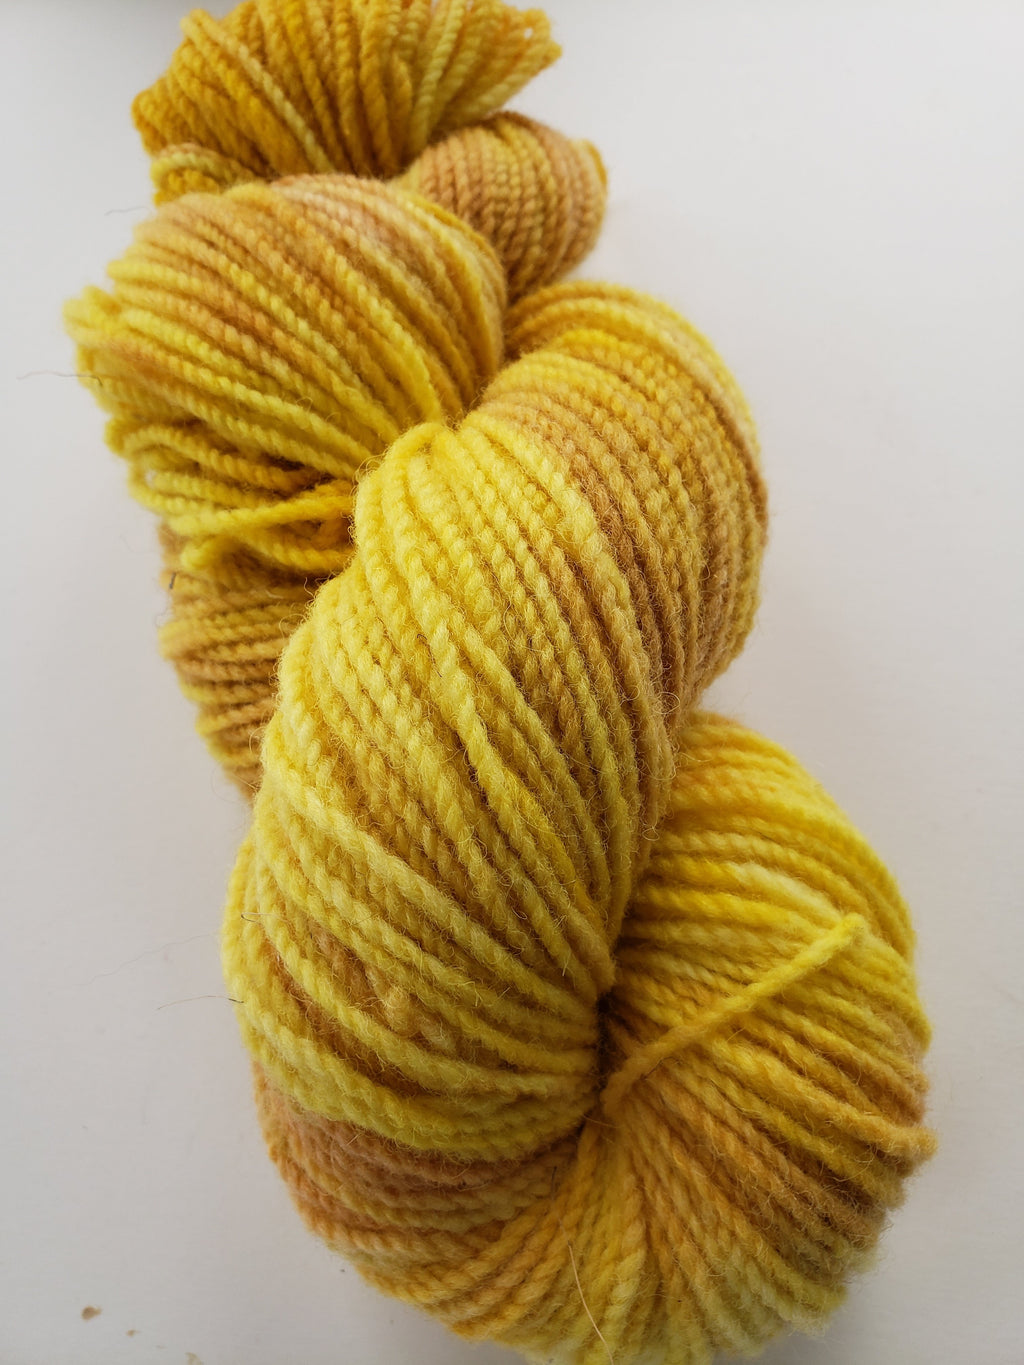 FORSYTHIA -  Hand Dyed Shades of Yellow, Gold Worsted Yarn for Rug Hooking - RSS170